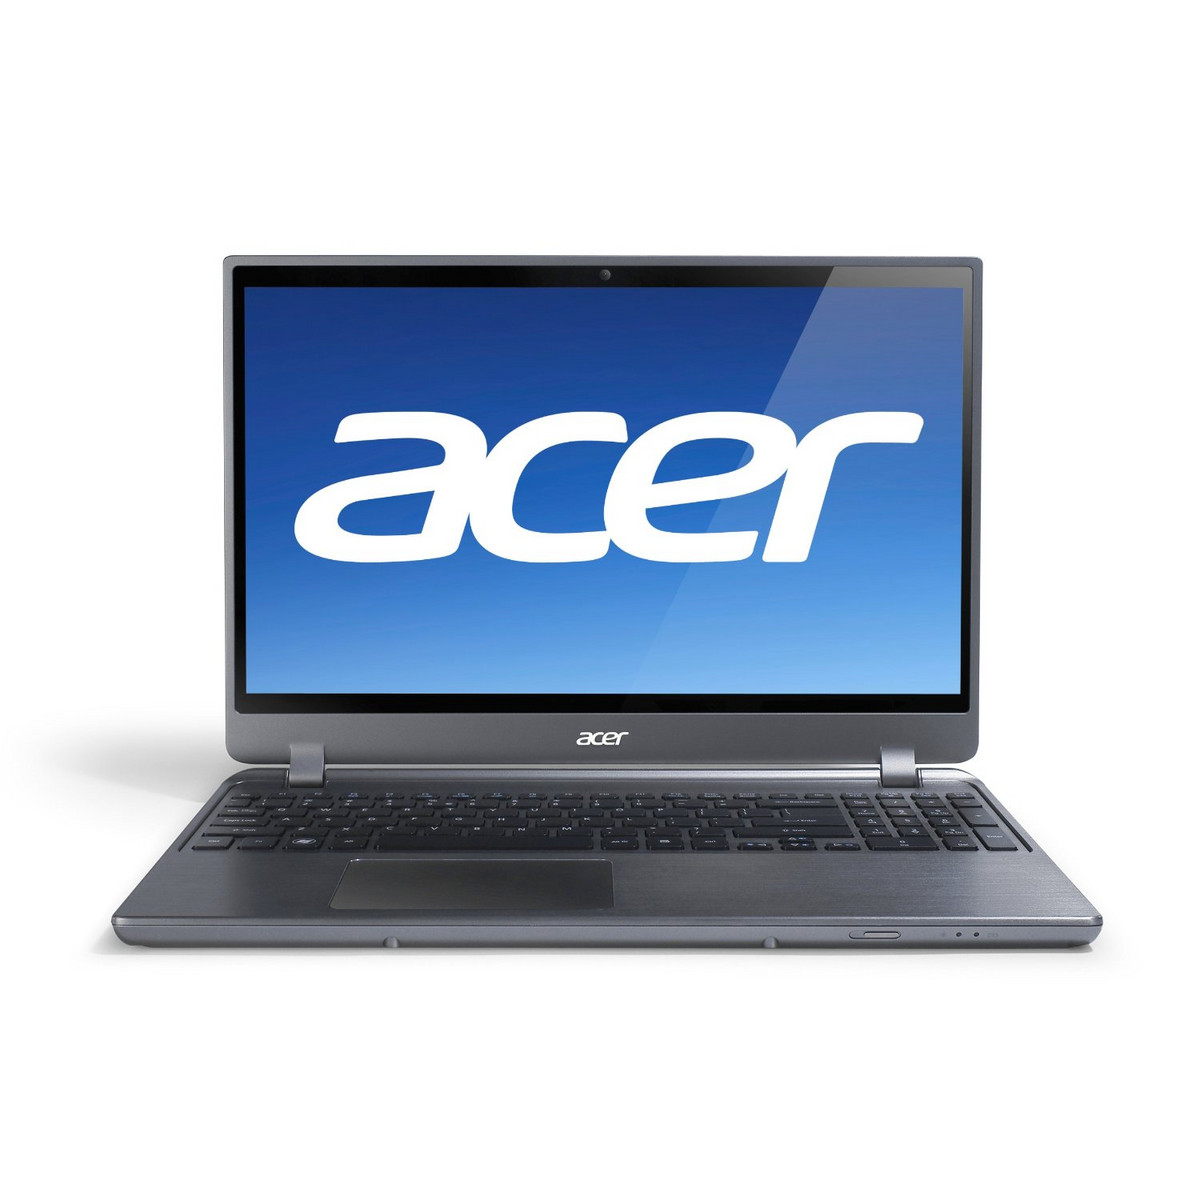 ACER ASPIRE M5 SERIES Z09 DRIVERS FOR WINDOWS DOWNLOAD